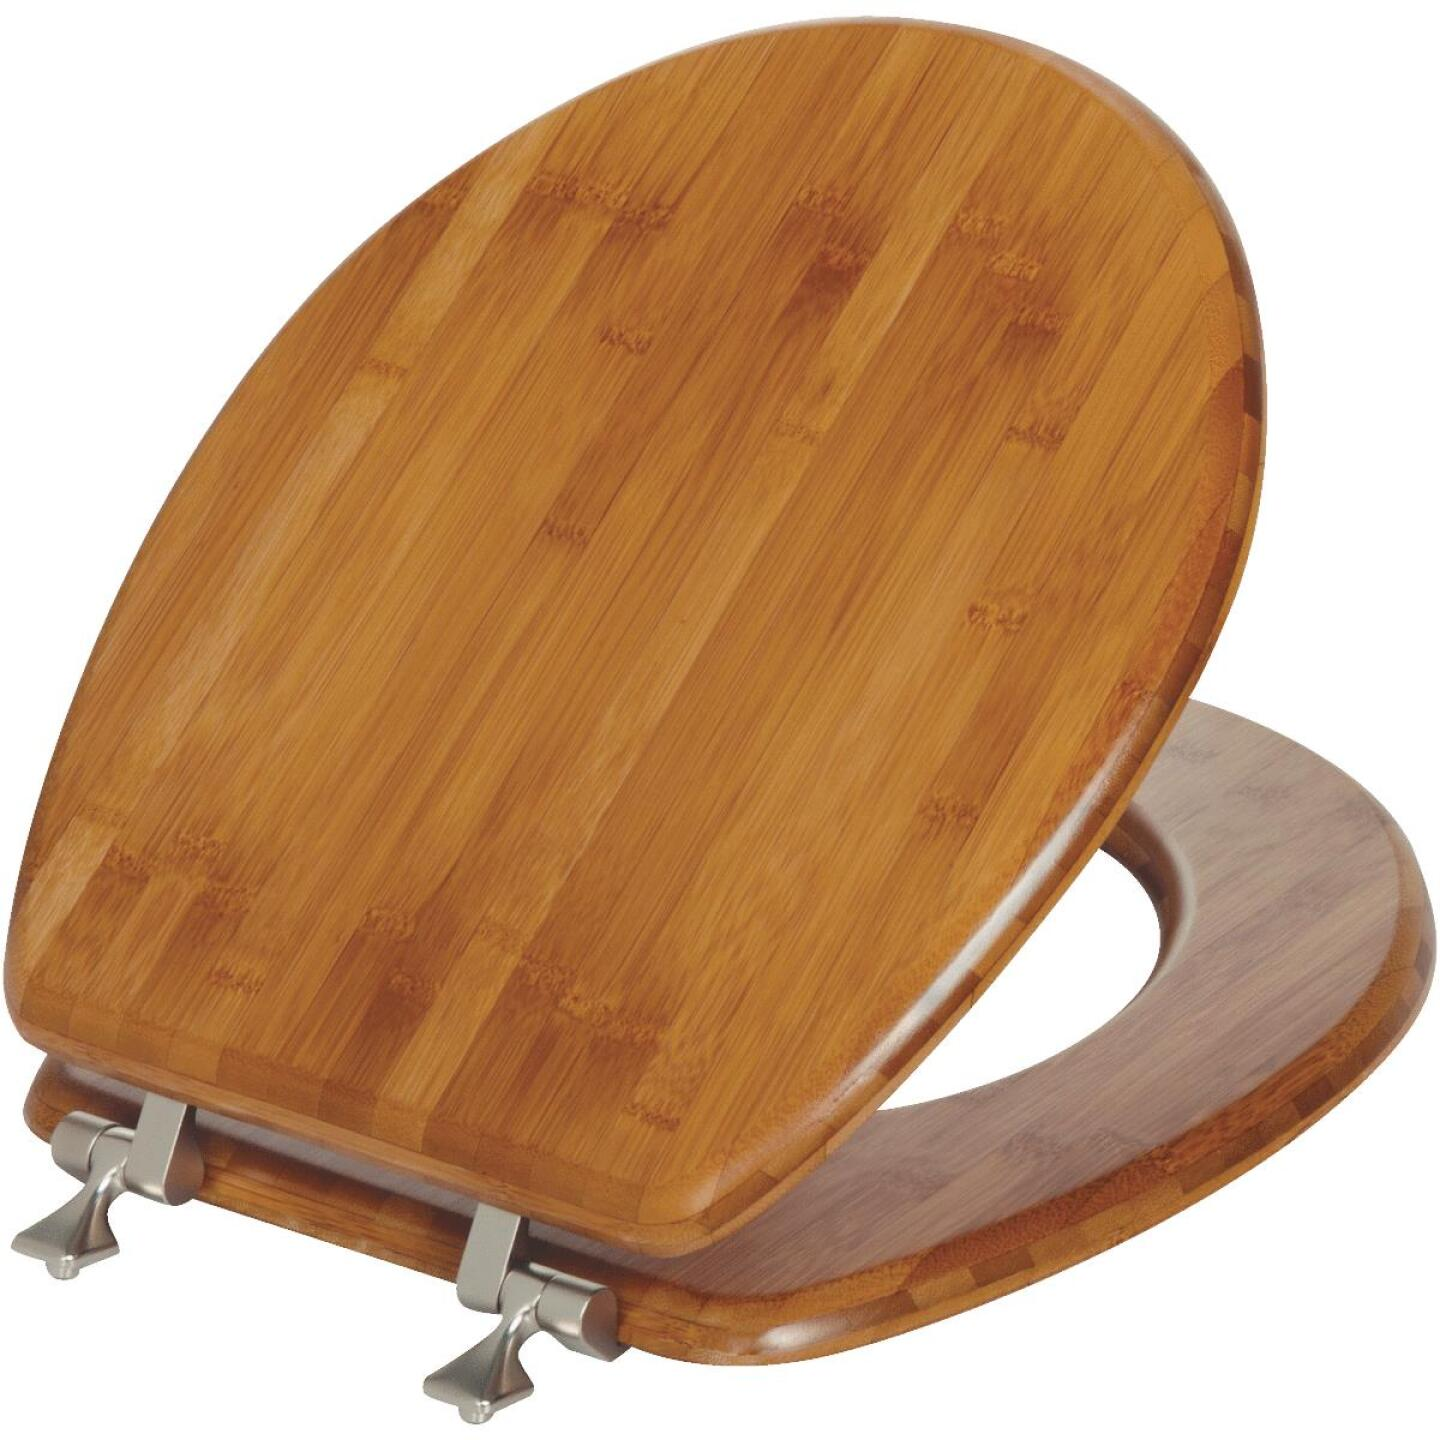 Mayfair Round Closed Front Bamboo Veneer Toilet Seat Image 1